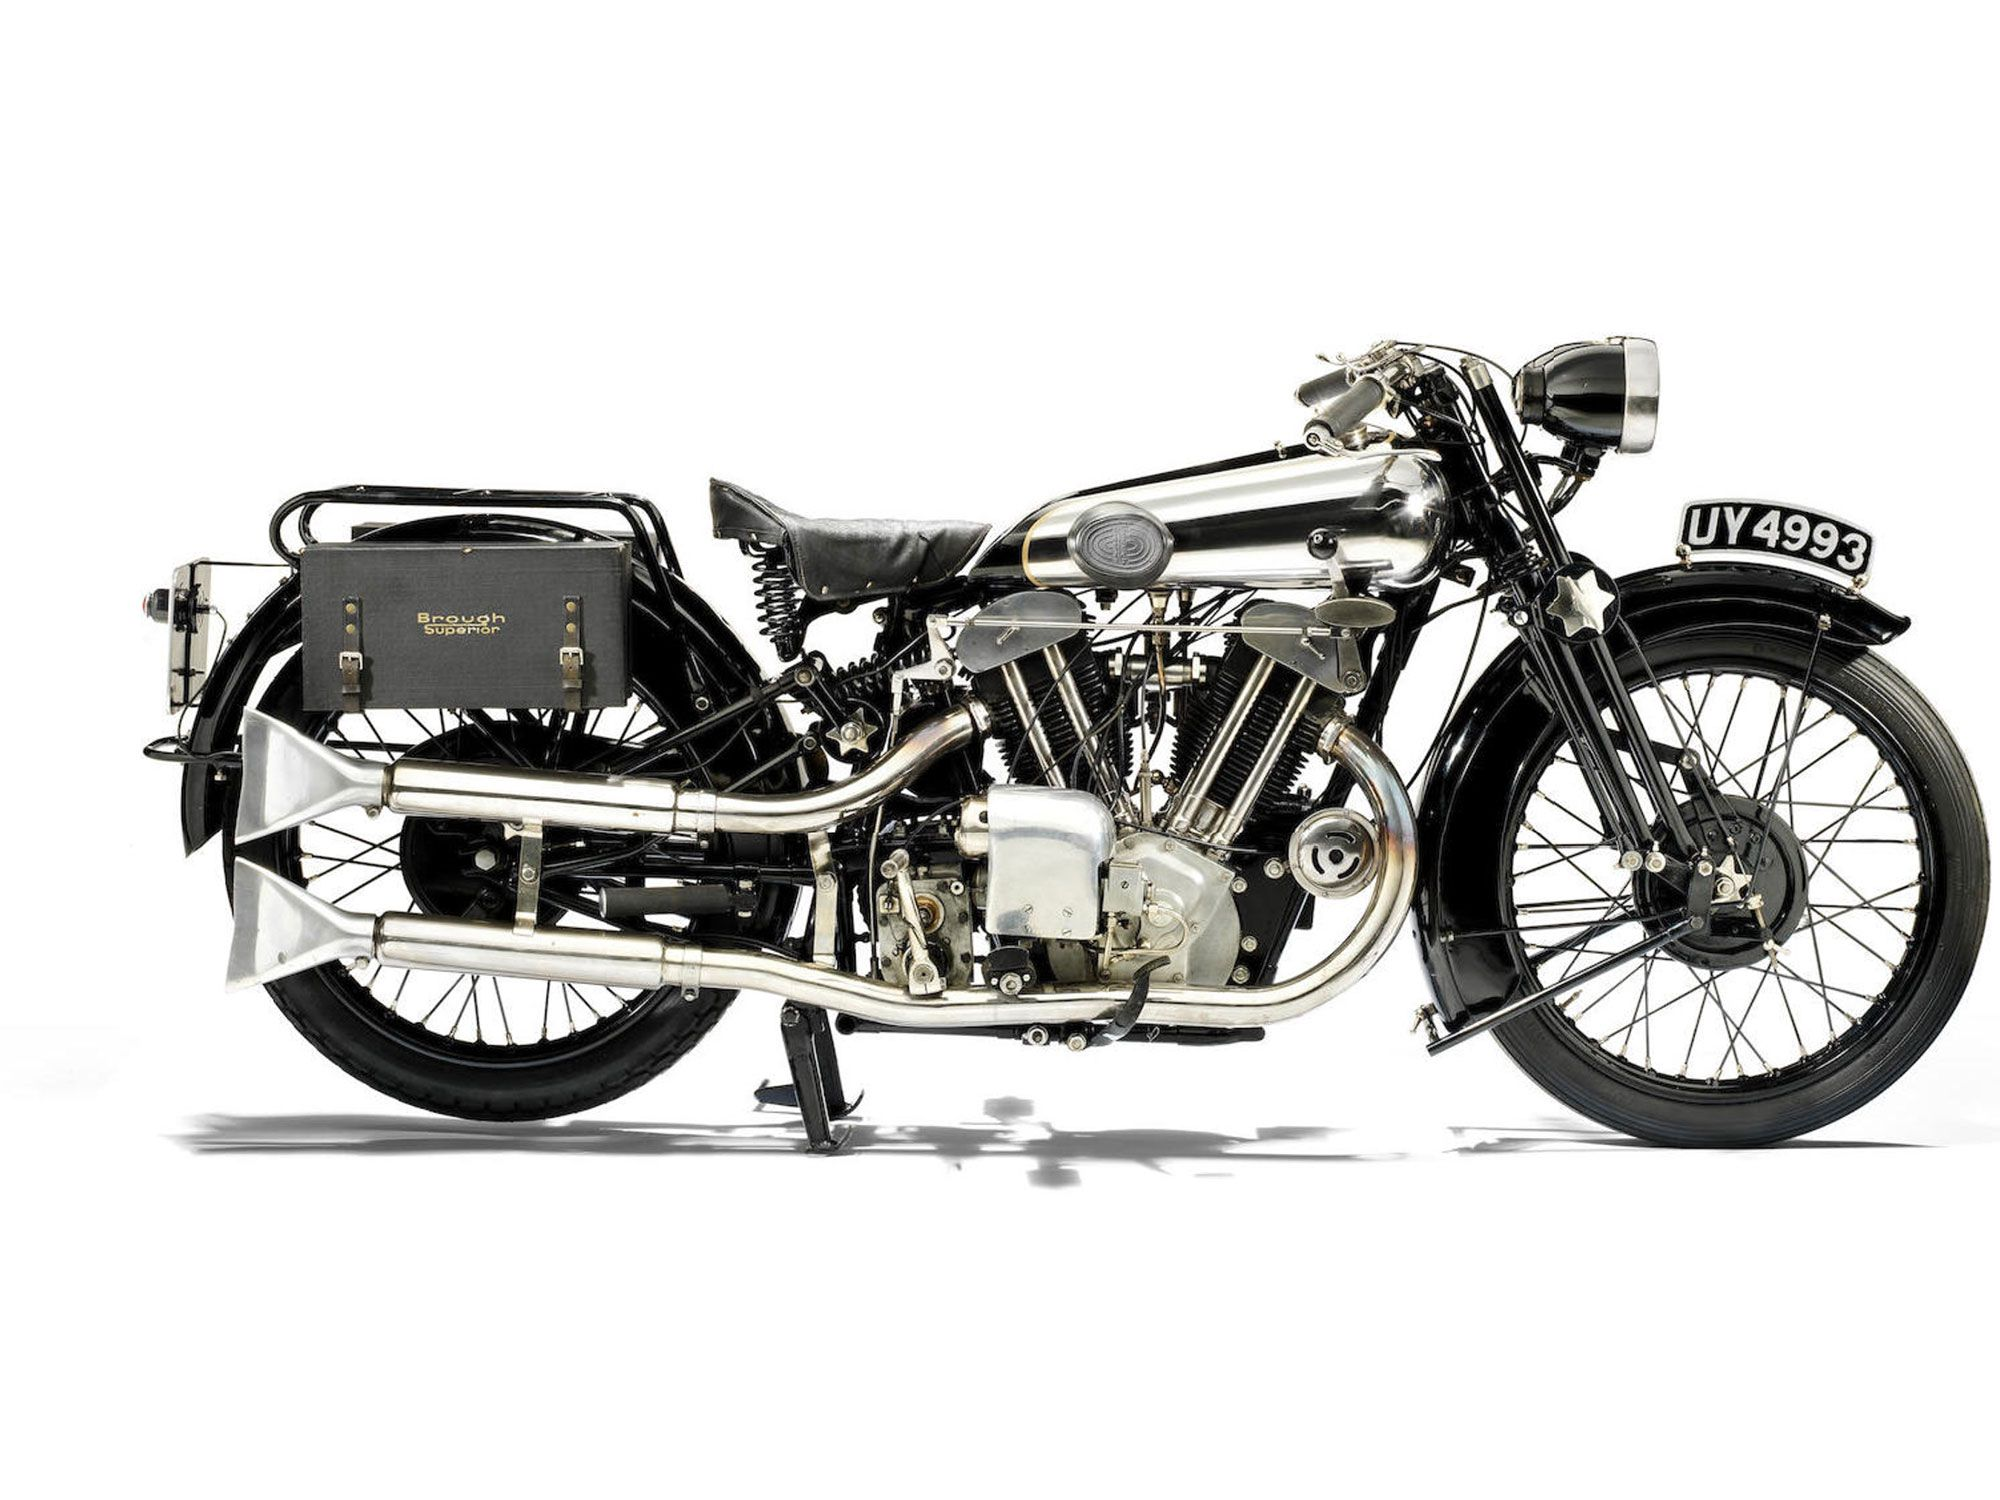 9. Brough enough? This 1929 SS100 with cool twin headlights guaranteed a 100-mph top speed.